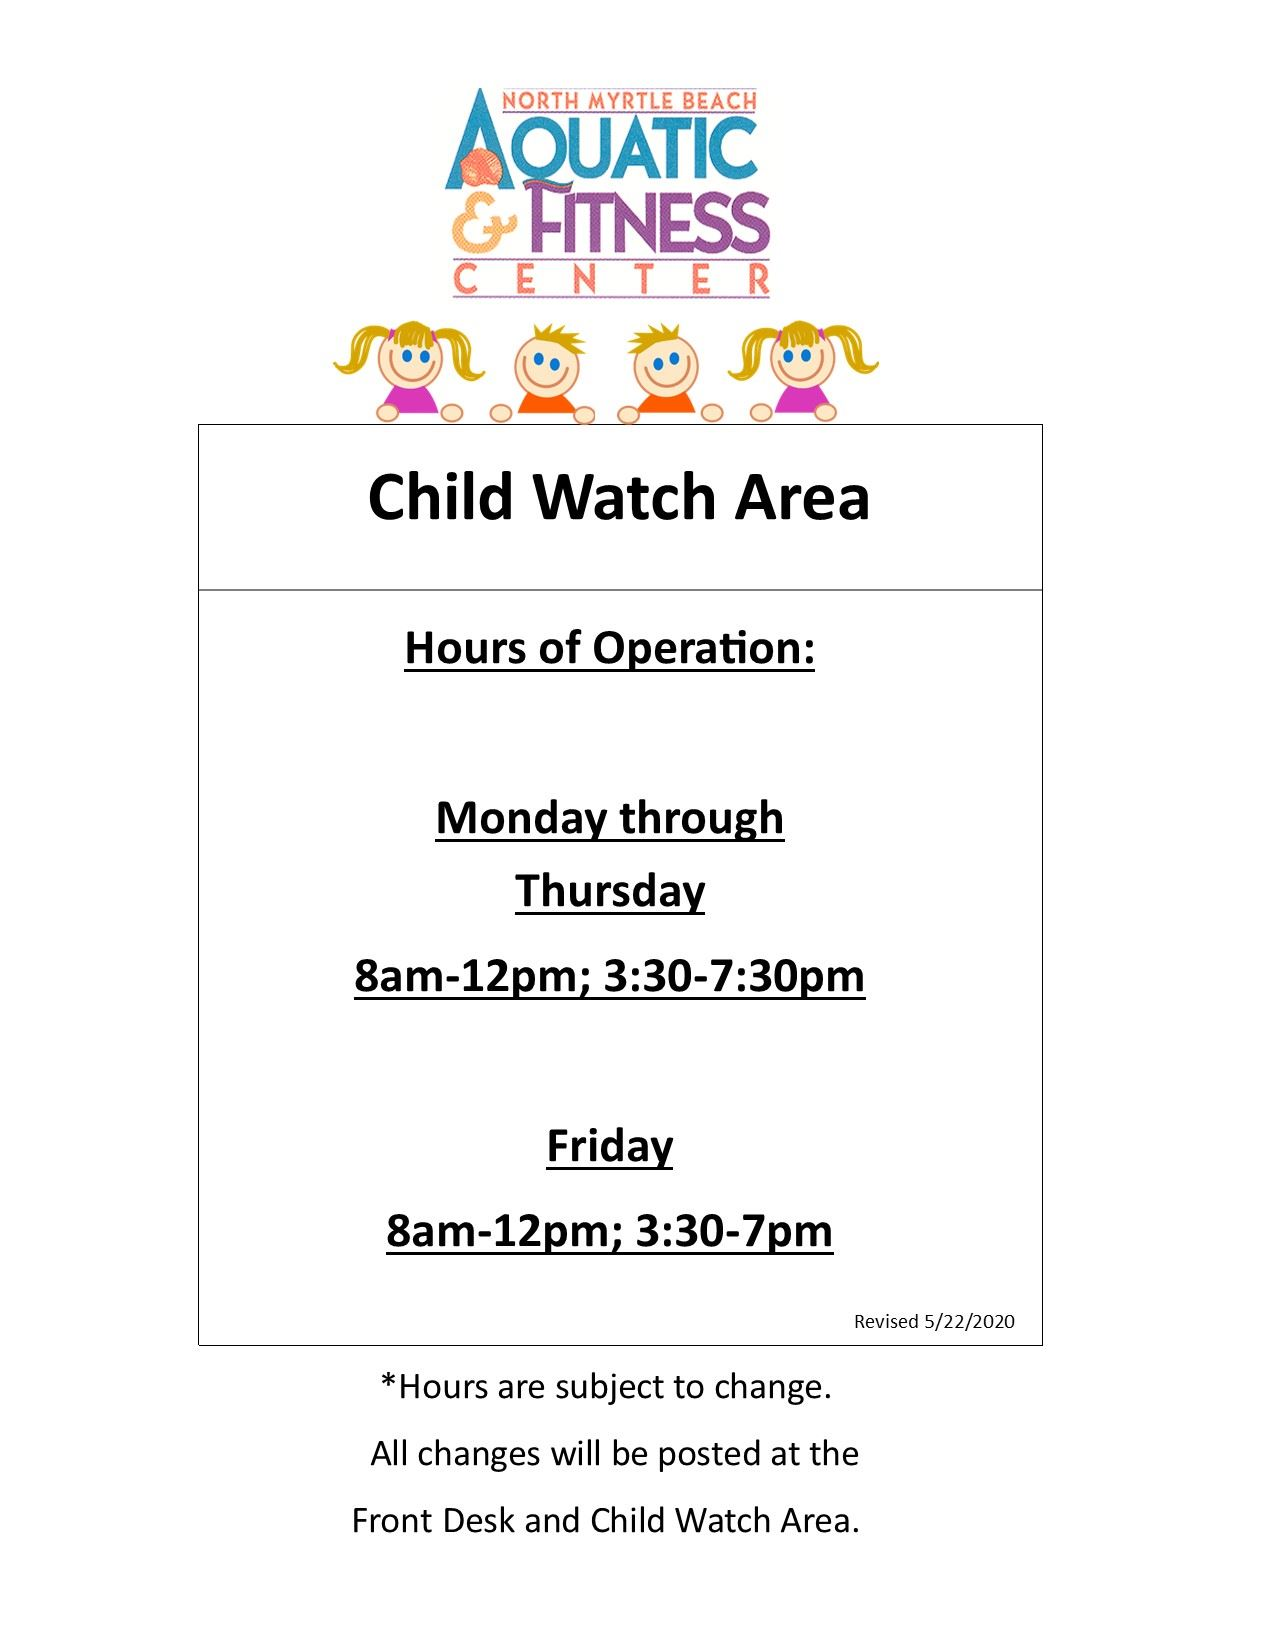 Child Watch Guidelines